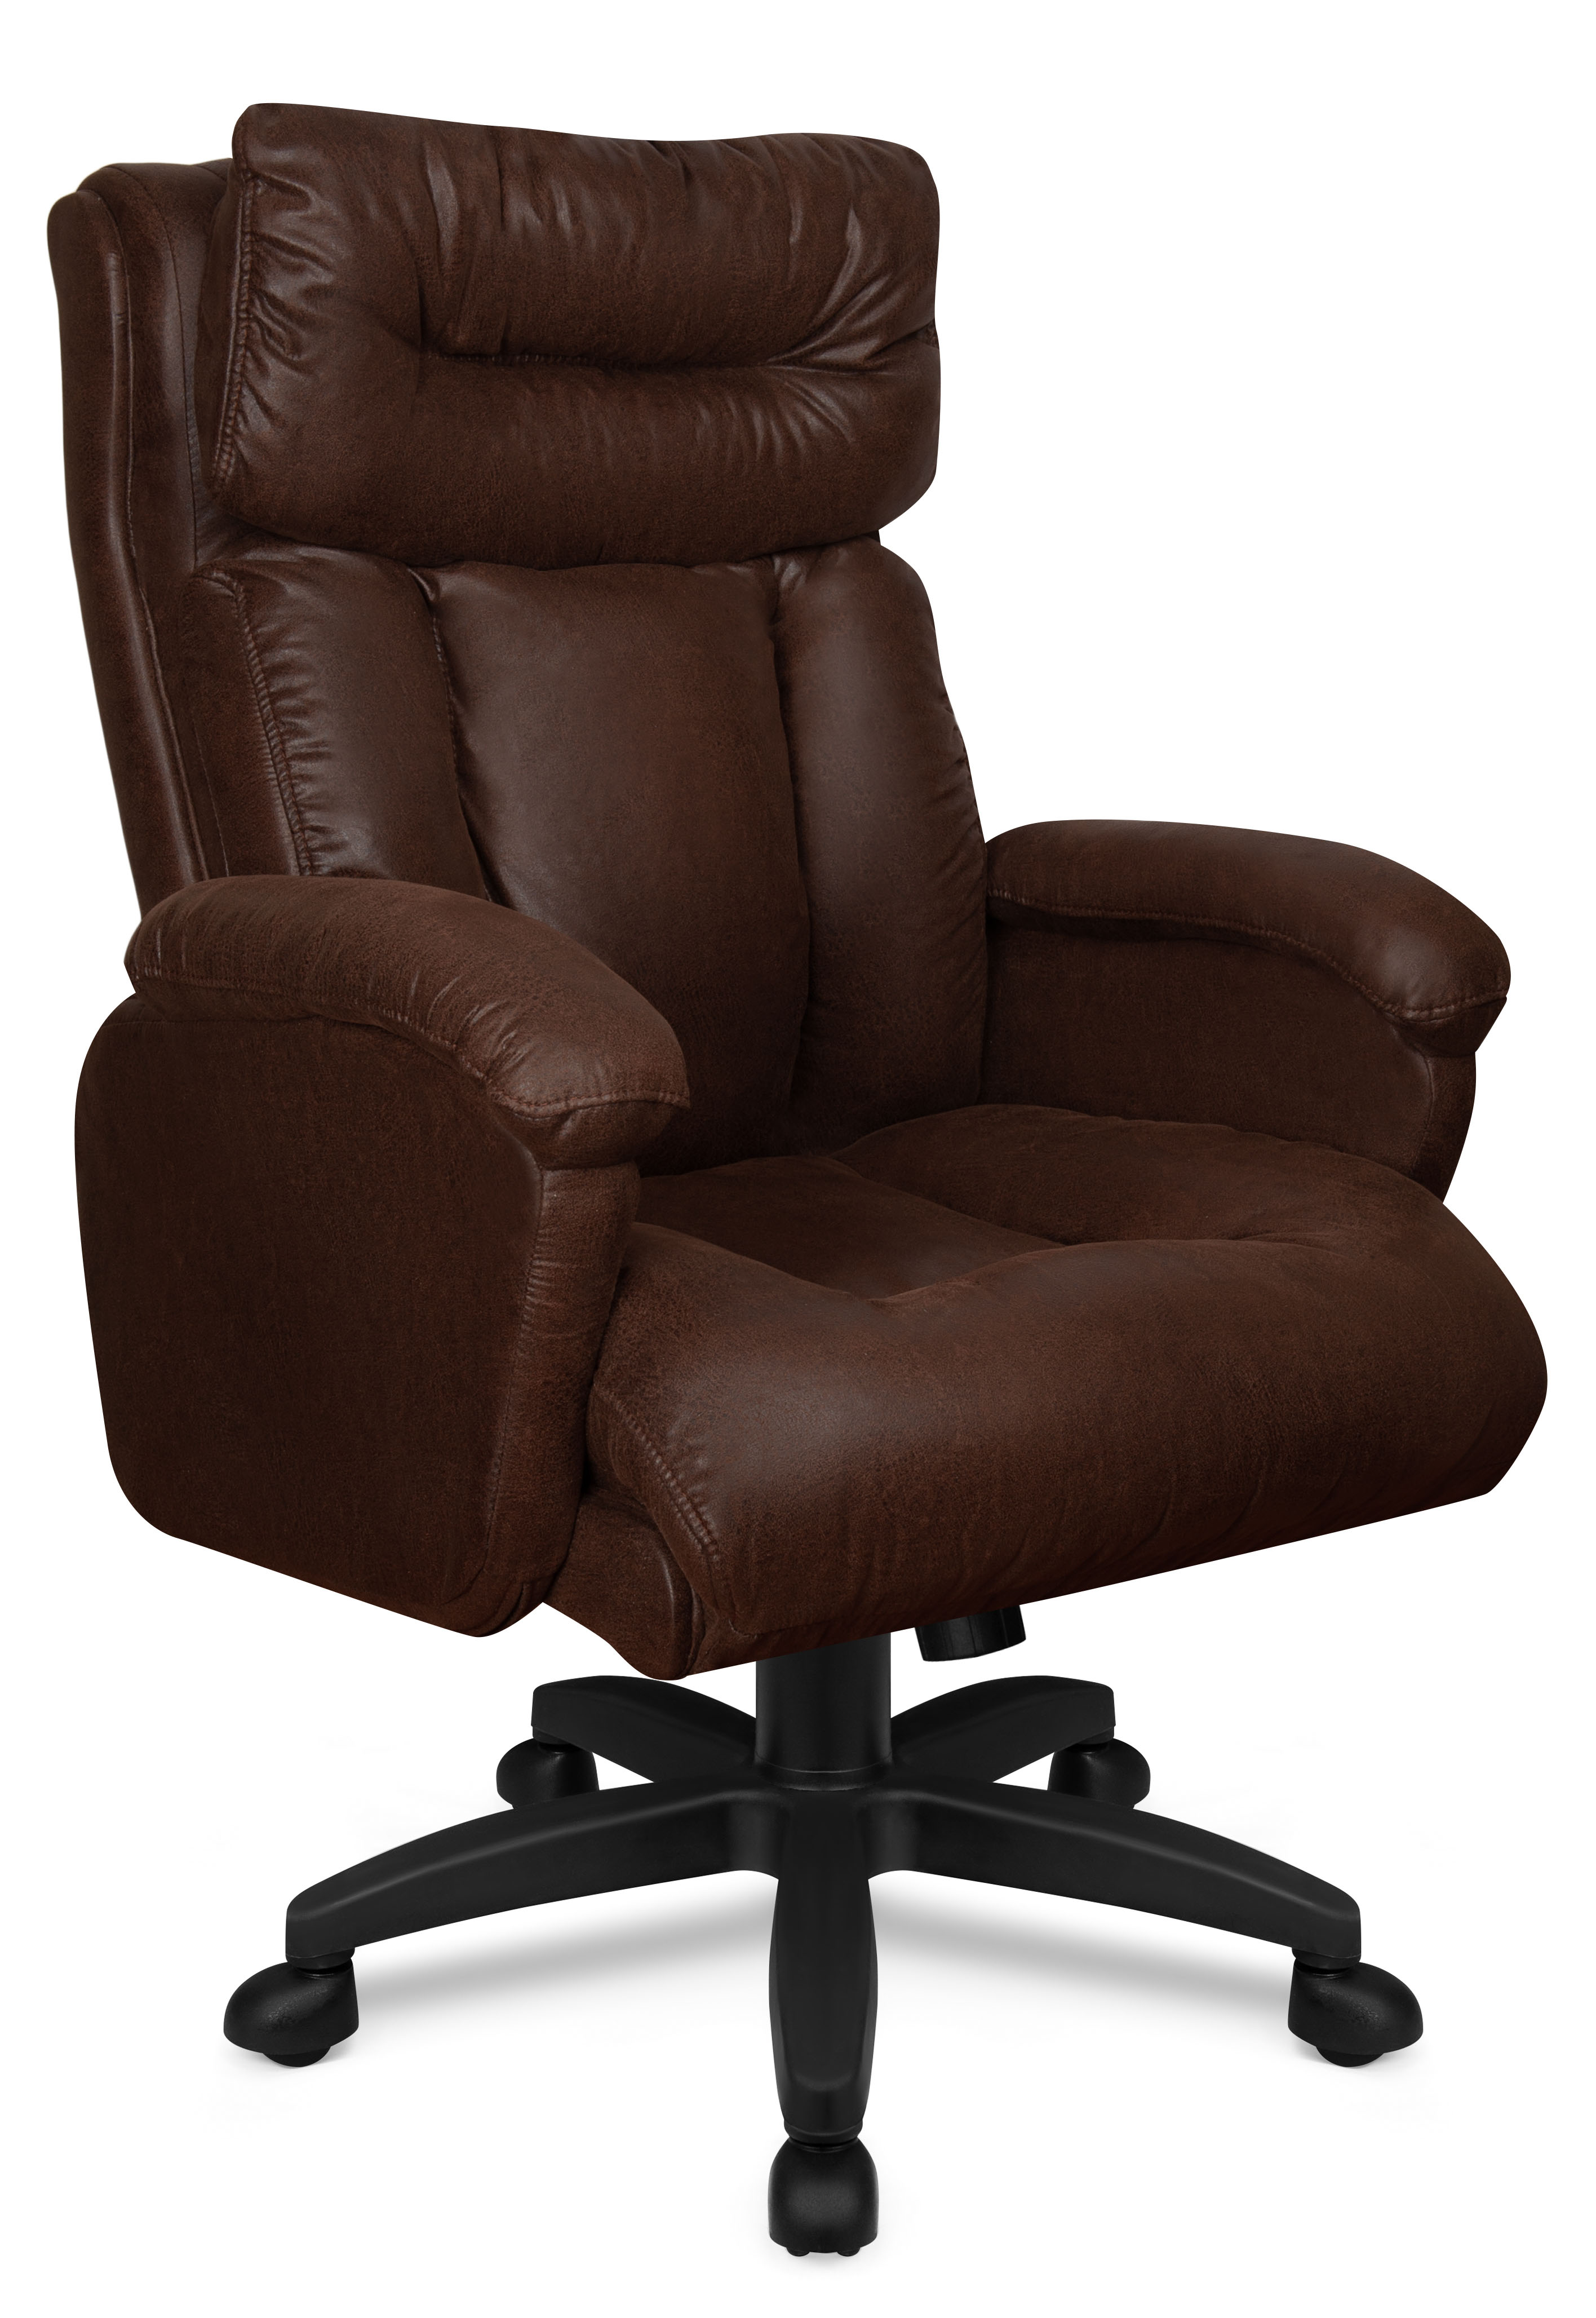 Chair For The Head Of SOKOLTEC